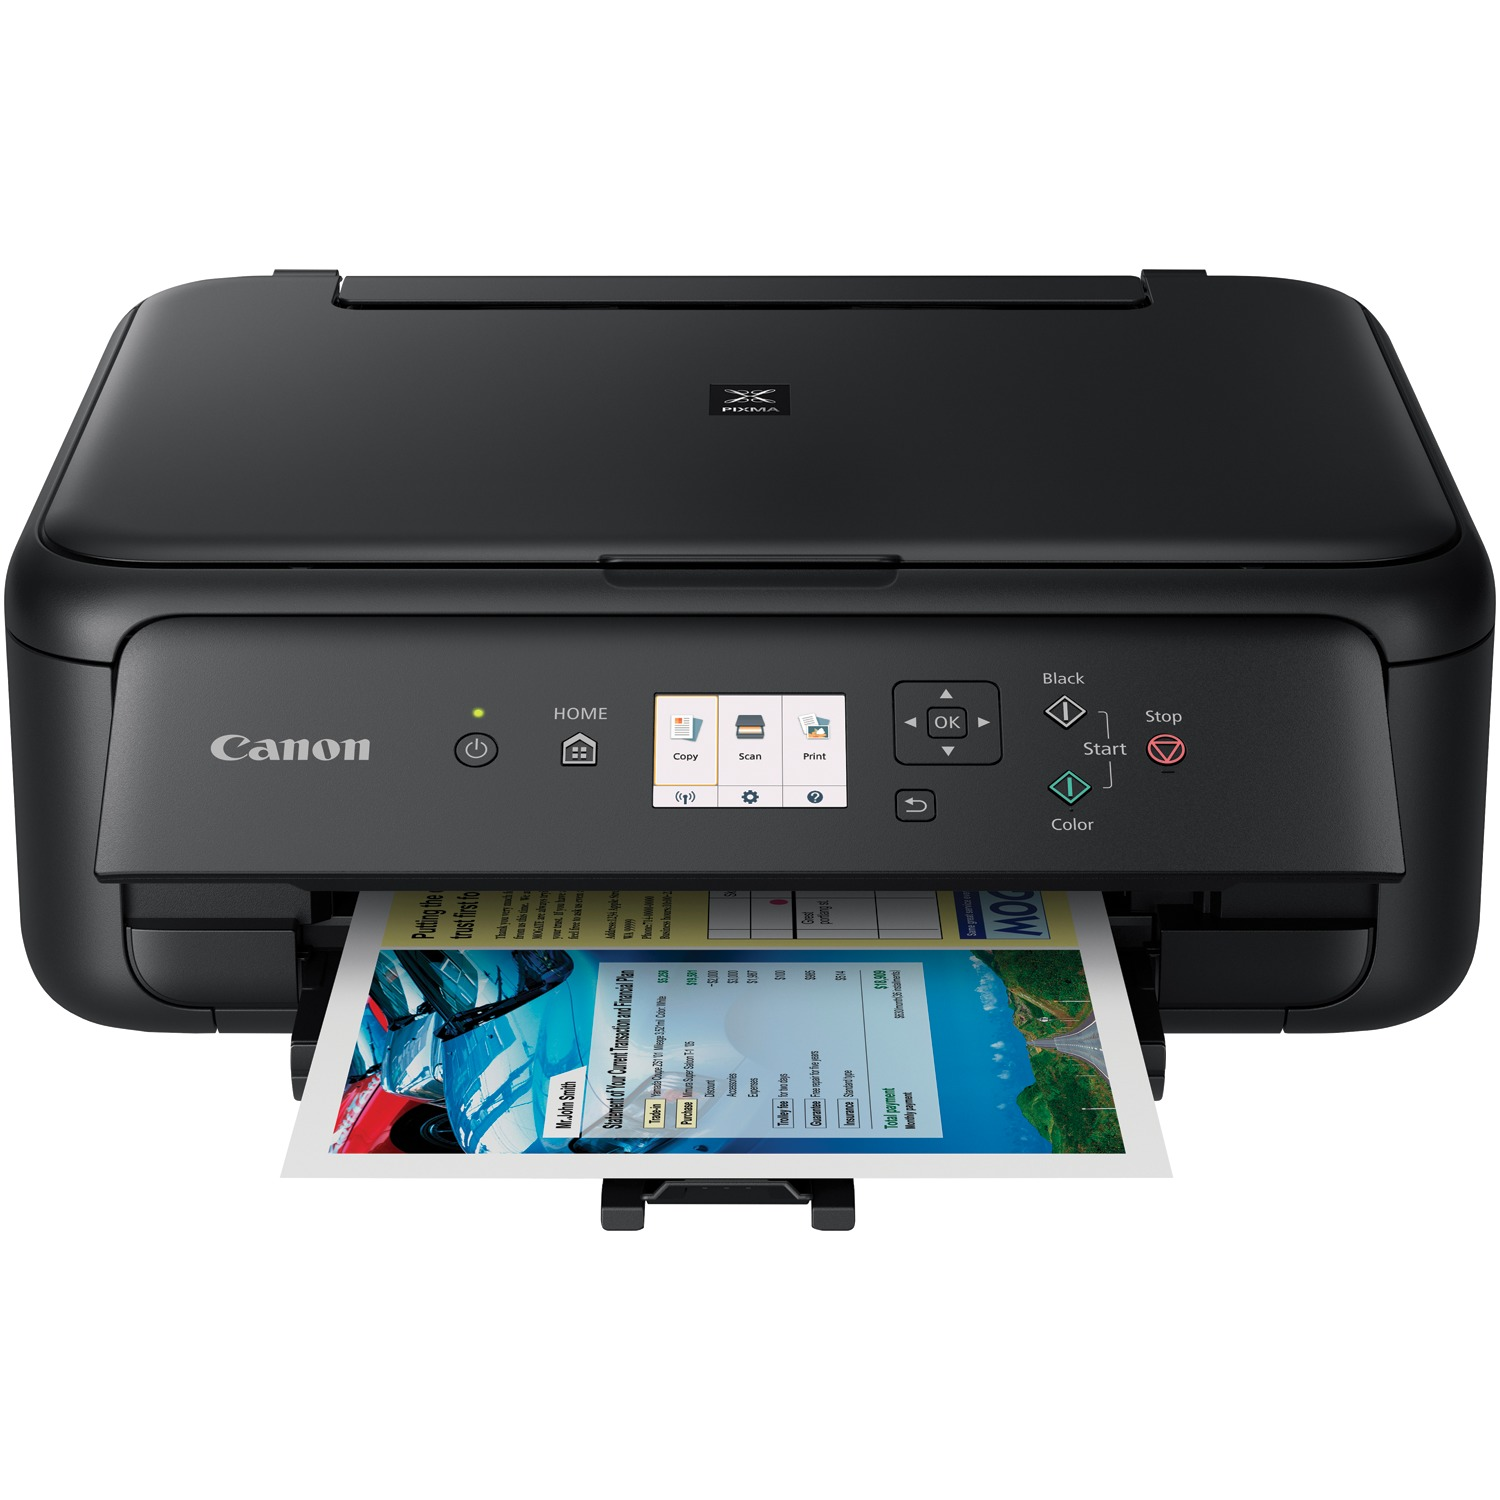 Canon 2228C002 PIXMA TS5120 Wireless Inkjet All-in-One Printer